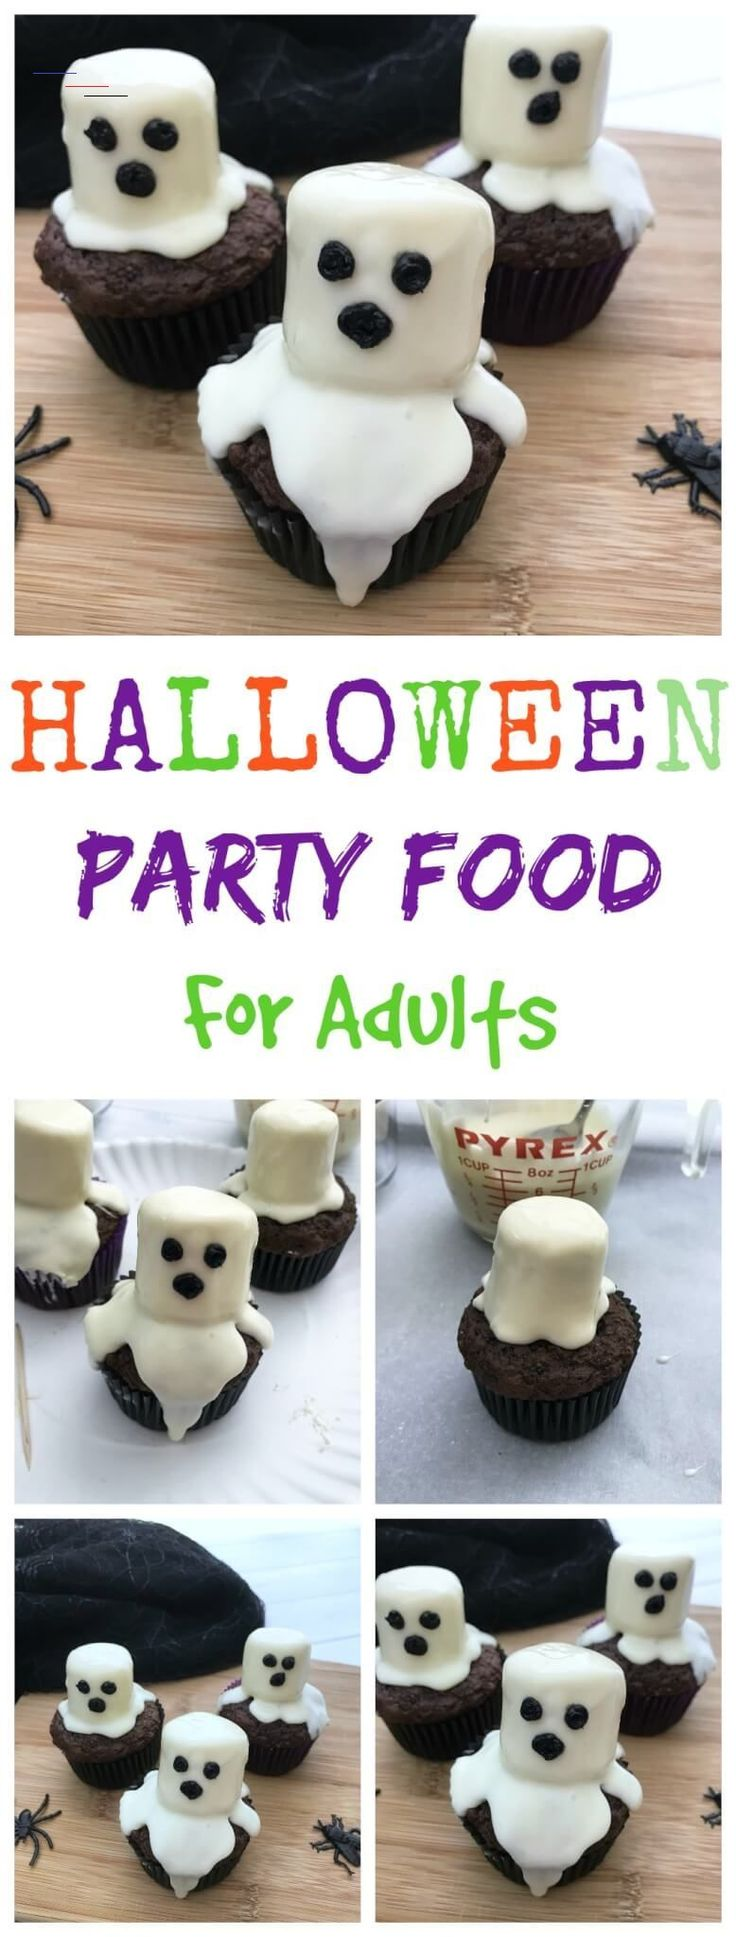 Halloween Party Food For Adults Mr Geek and Gadgets